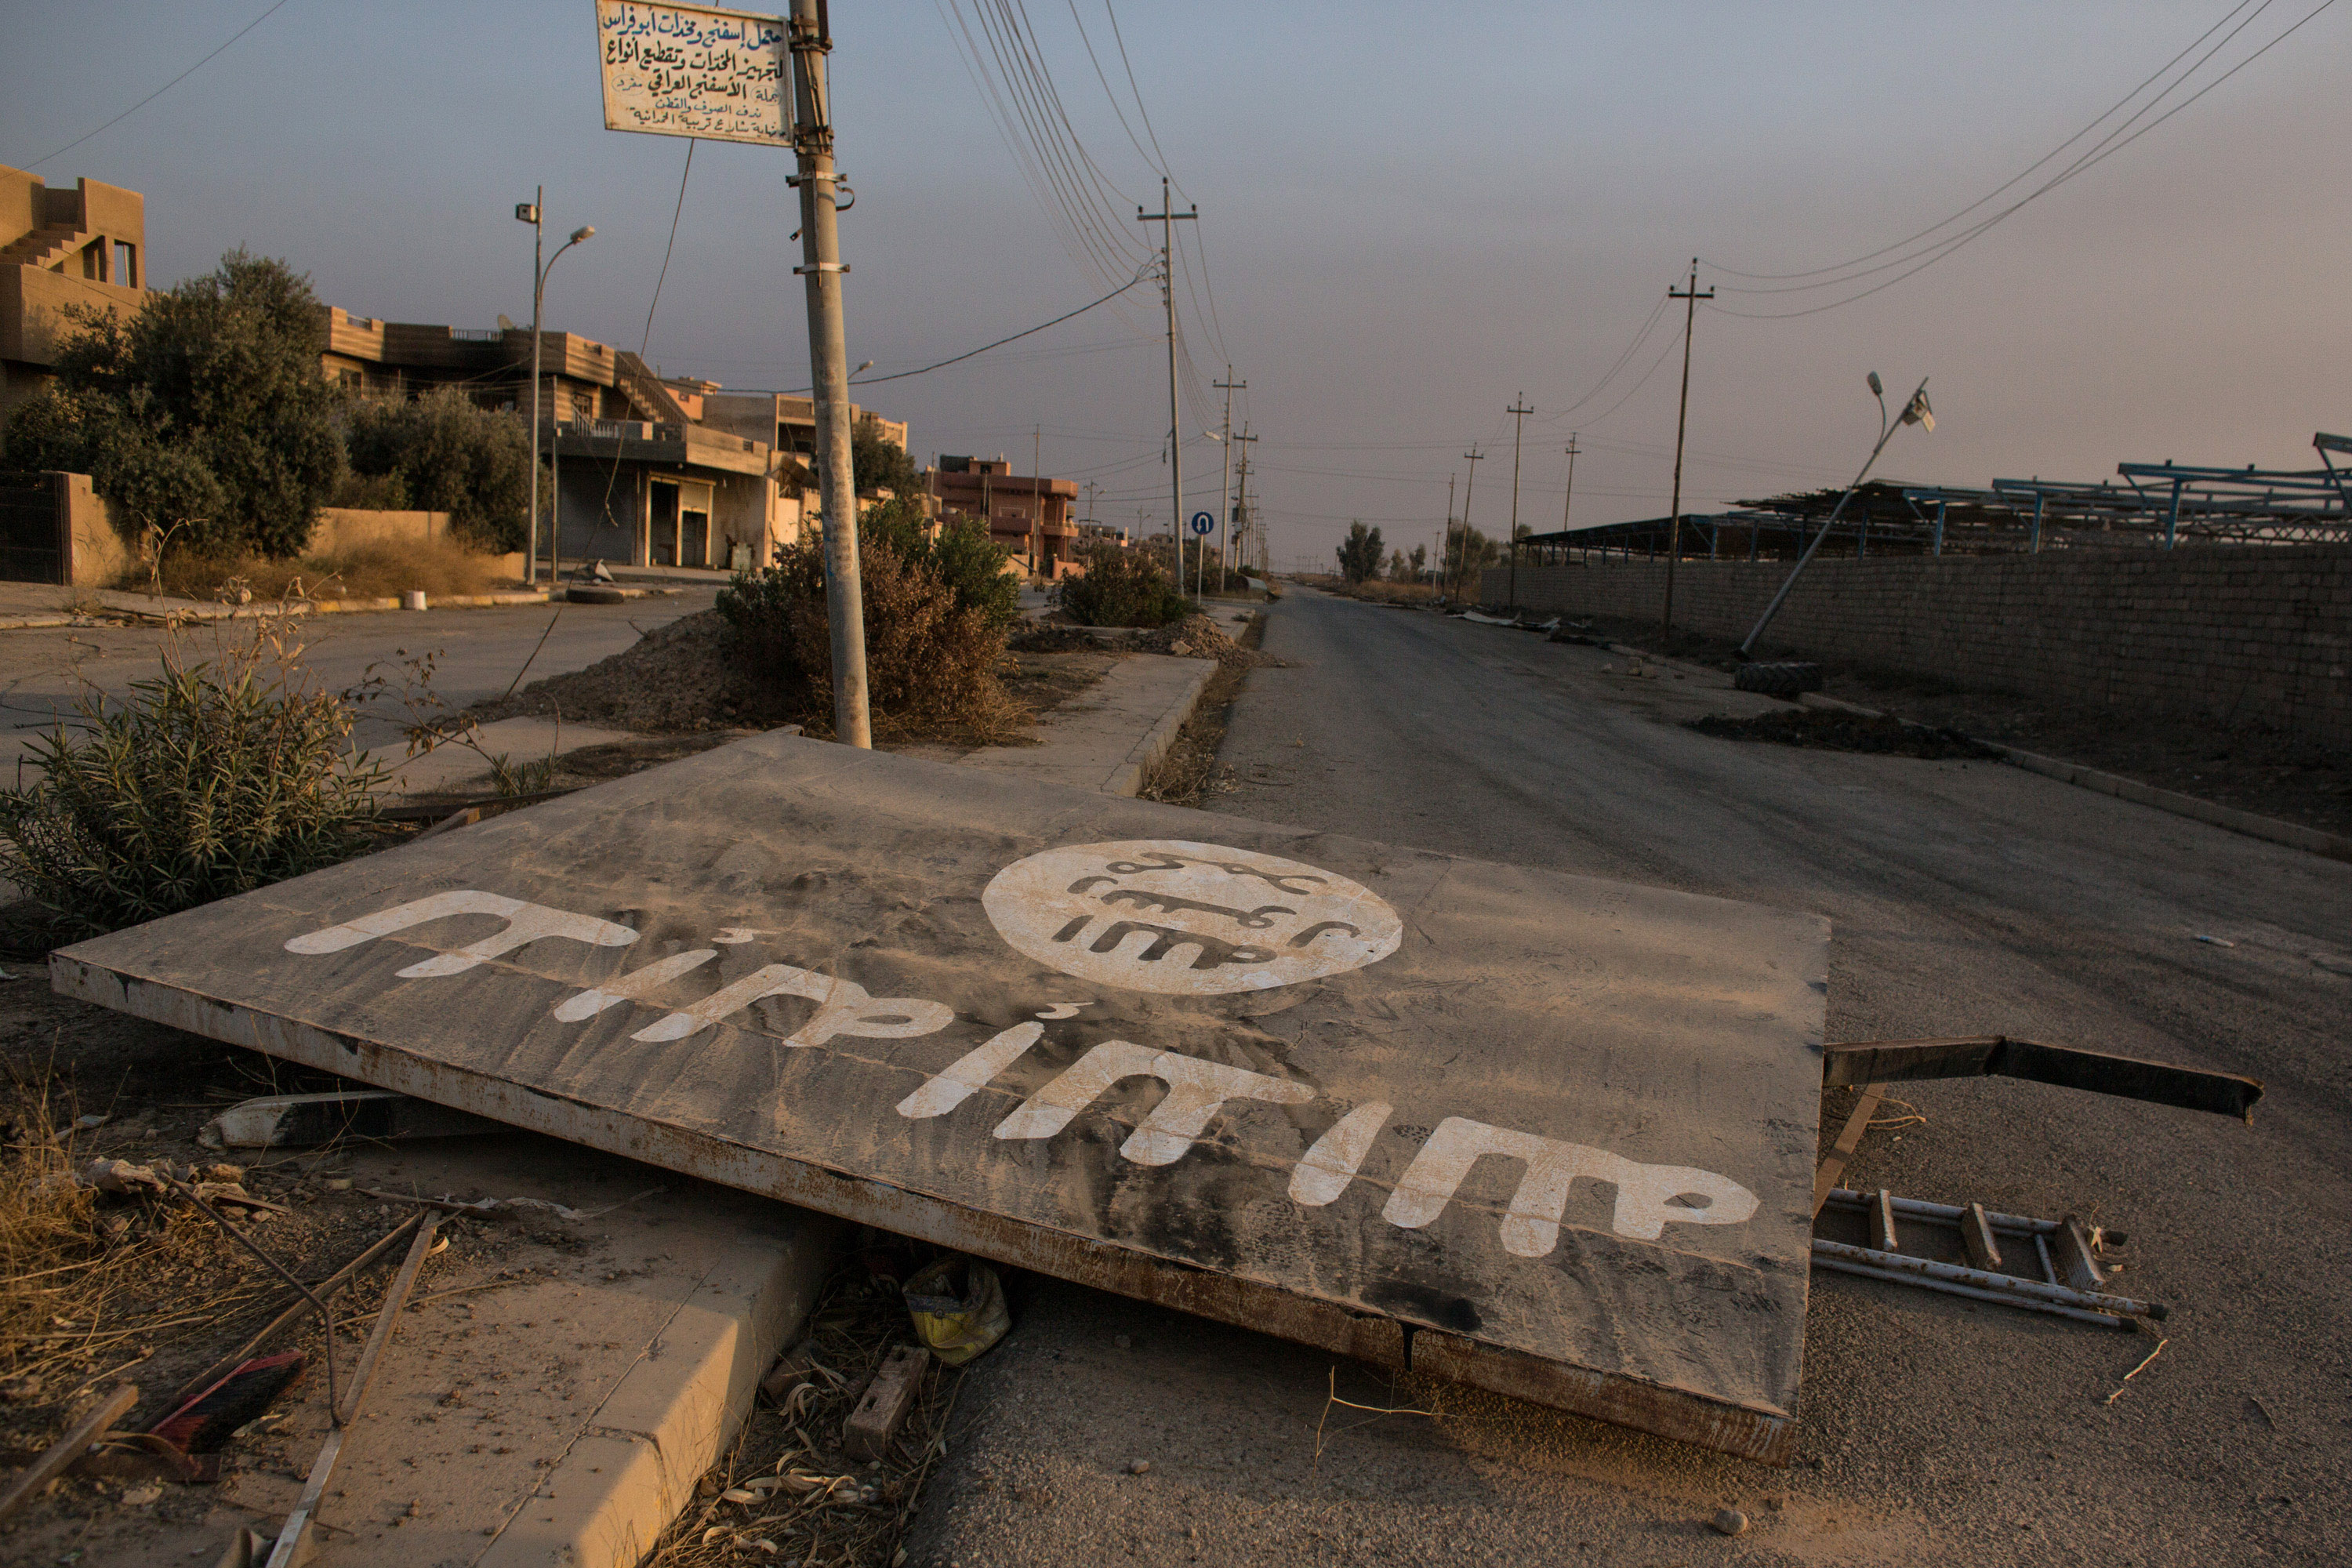 An ISIL billboard is seen destroyed in the middle of the road Qaraqosh, Iraq on Nov. 8, 2016